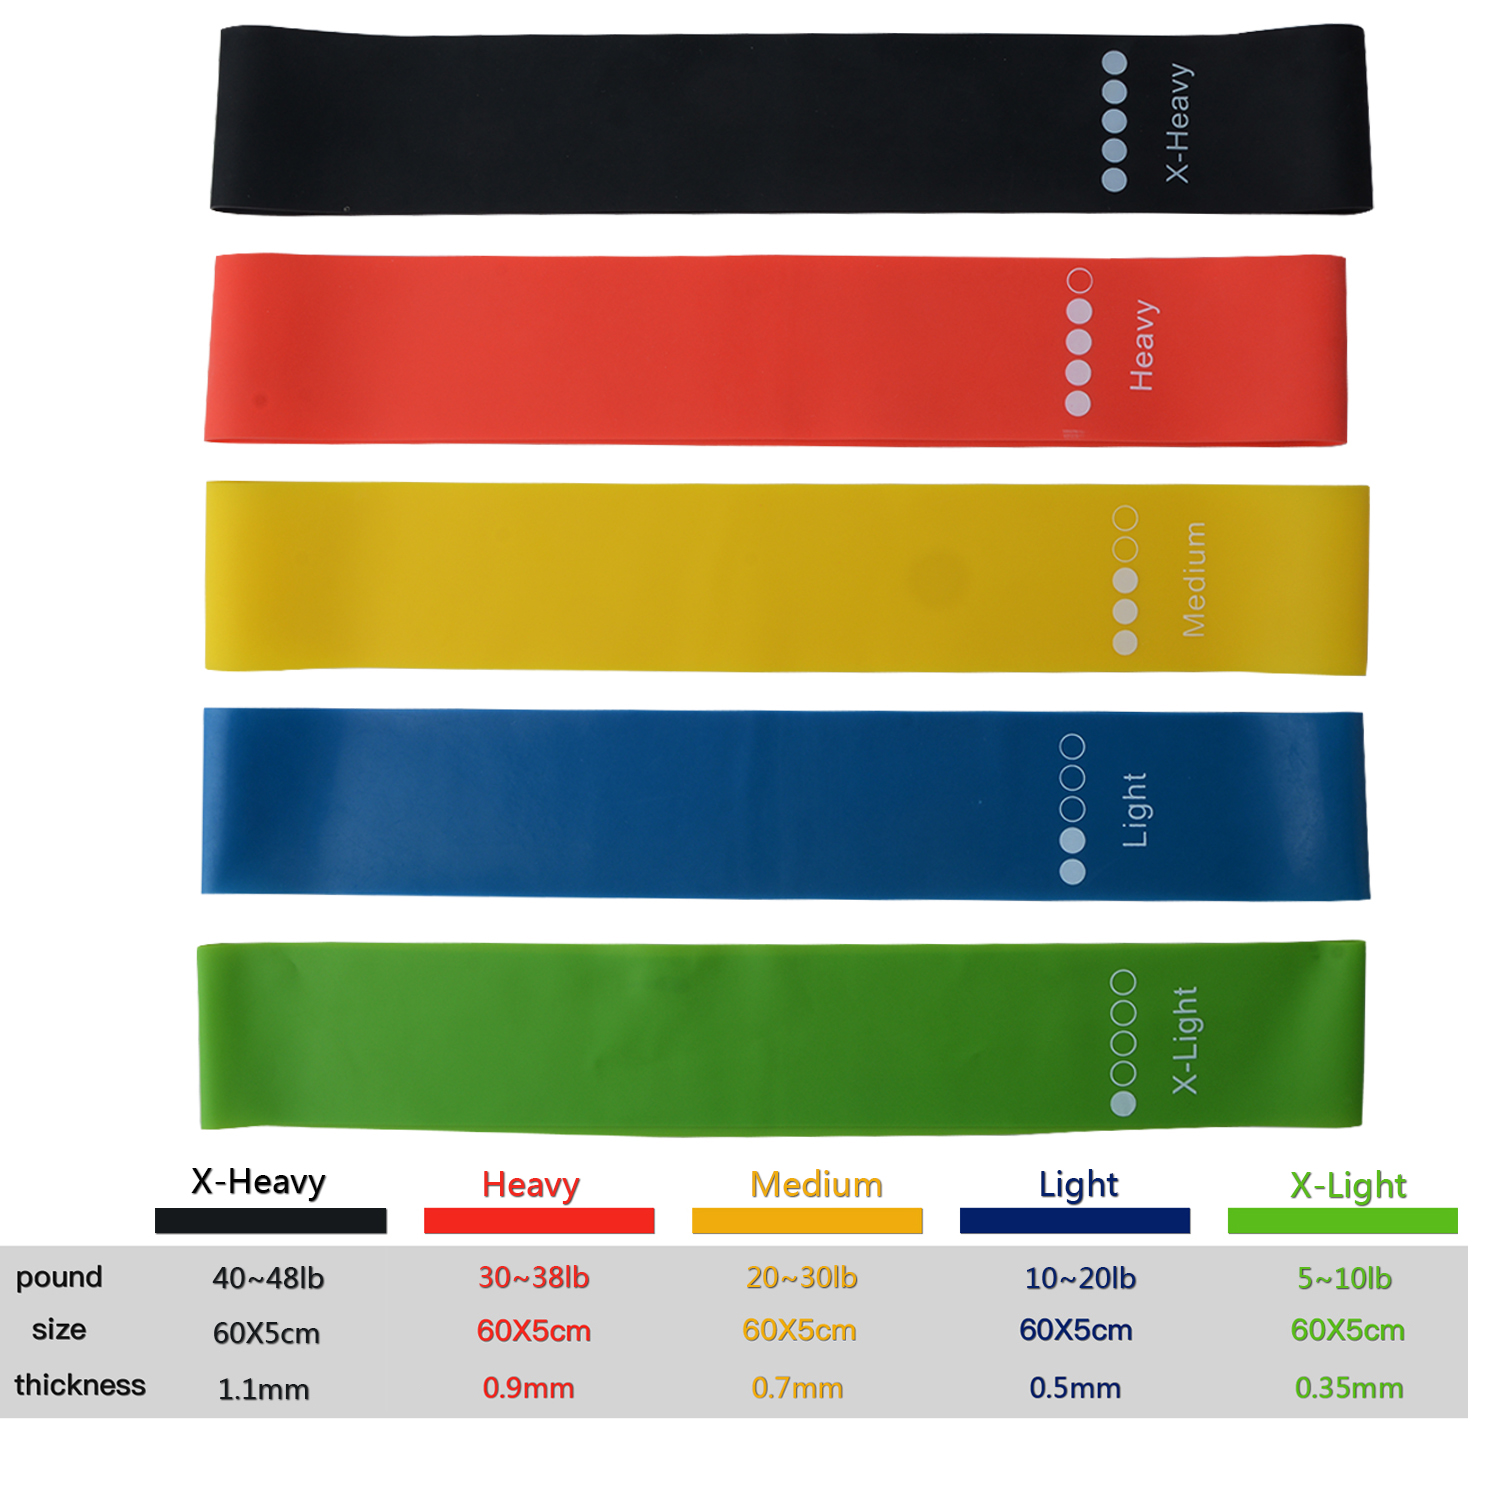 Vertical Jump Trainer Leg Jumping Bounce Training Resistance Band